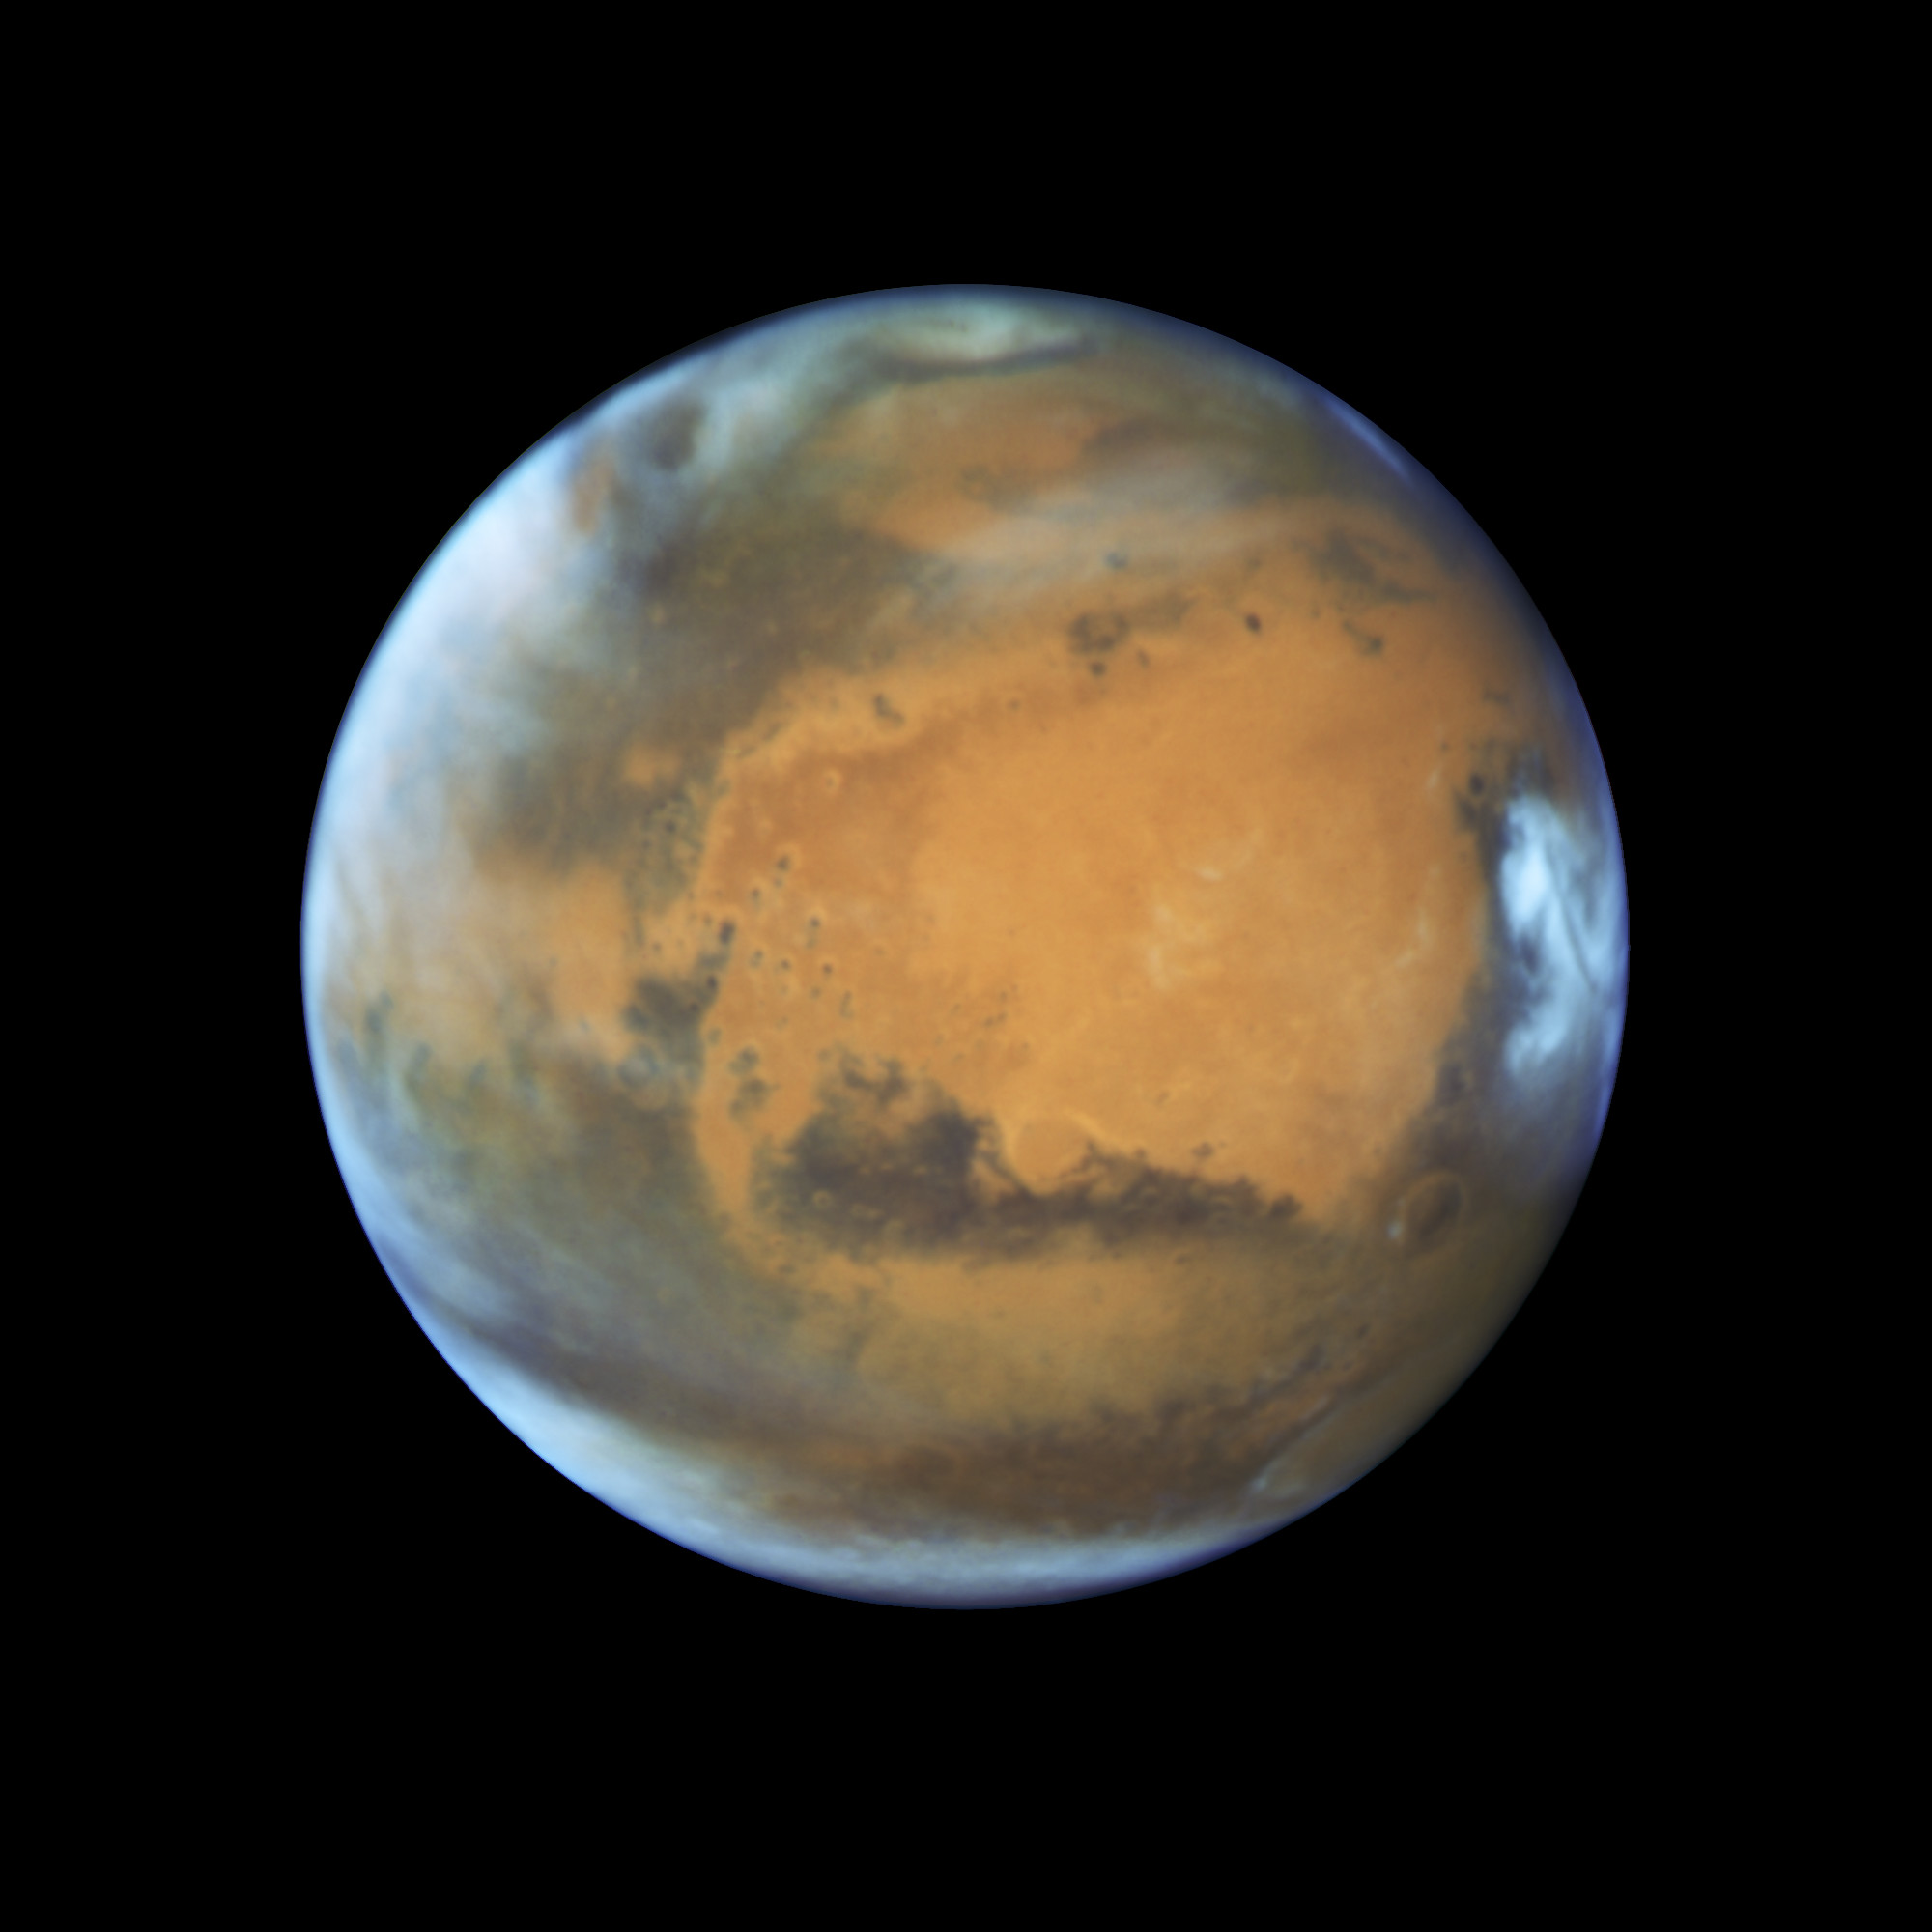 Hubble's Decades-Long Look at Mars Reveals Much About the Red Planet (Video)